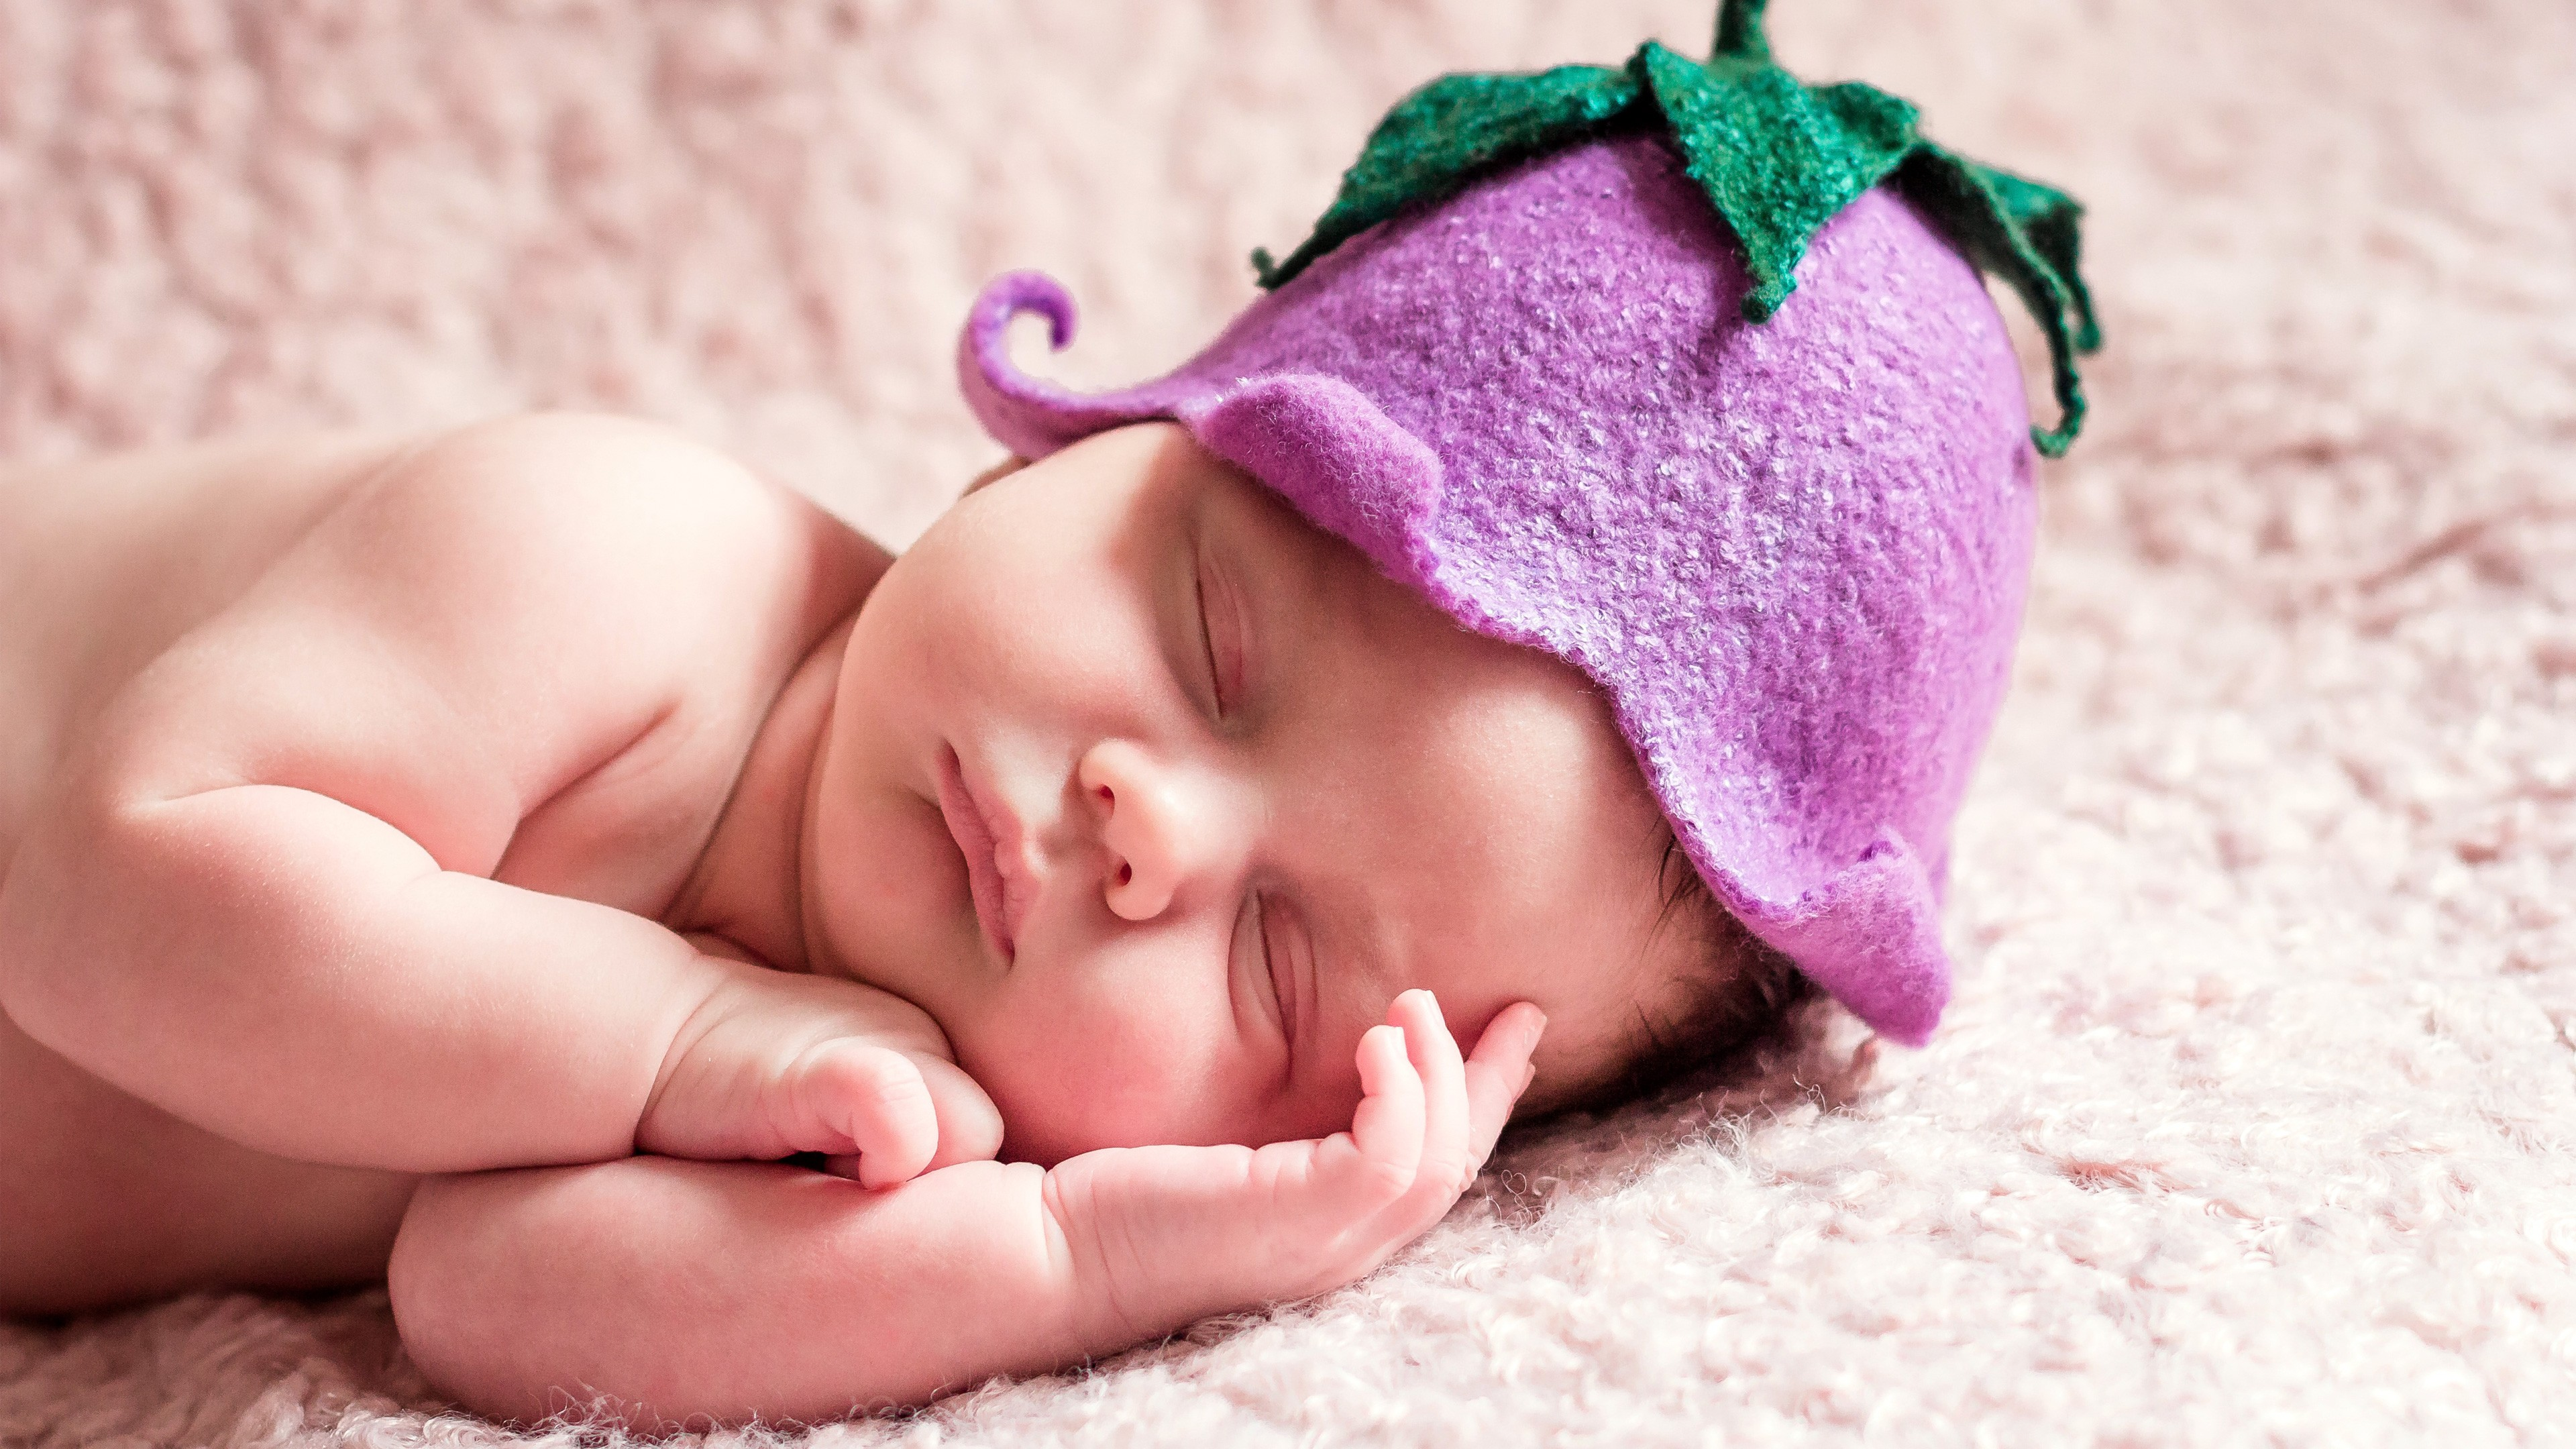 cute_sleeping_newborn_baby-3840x2160